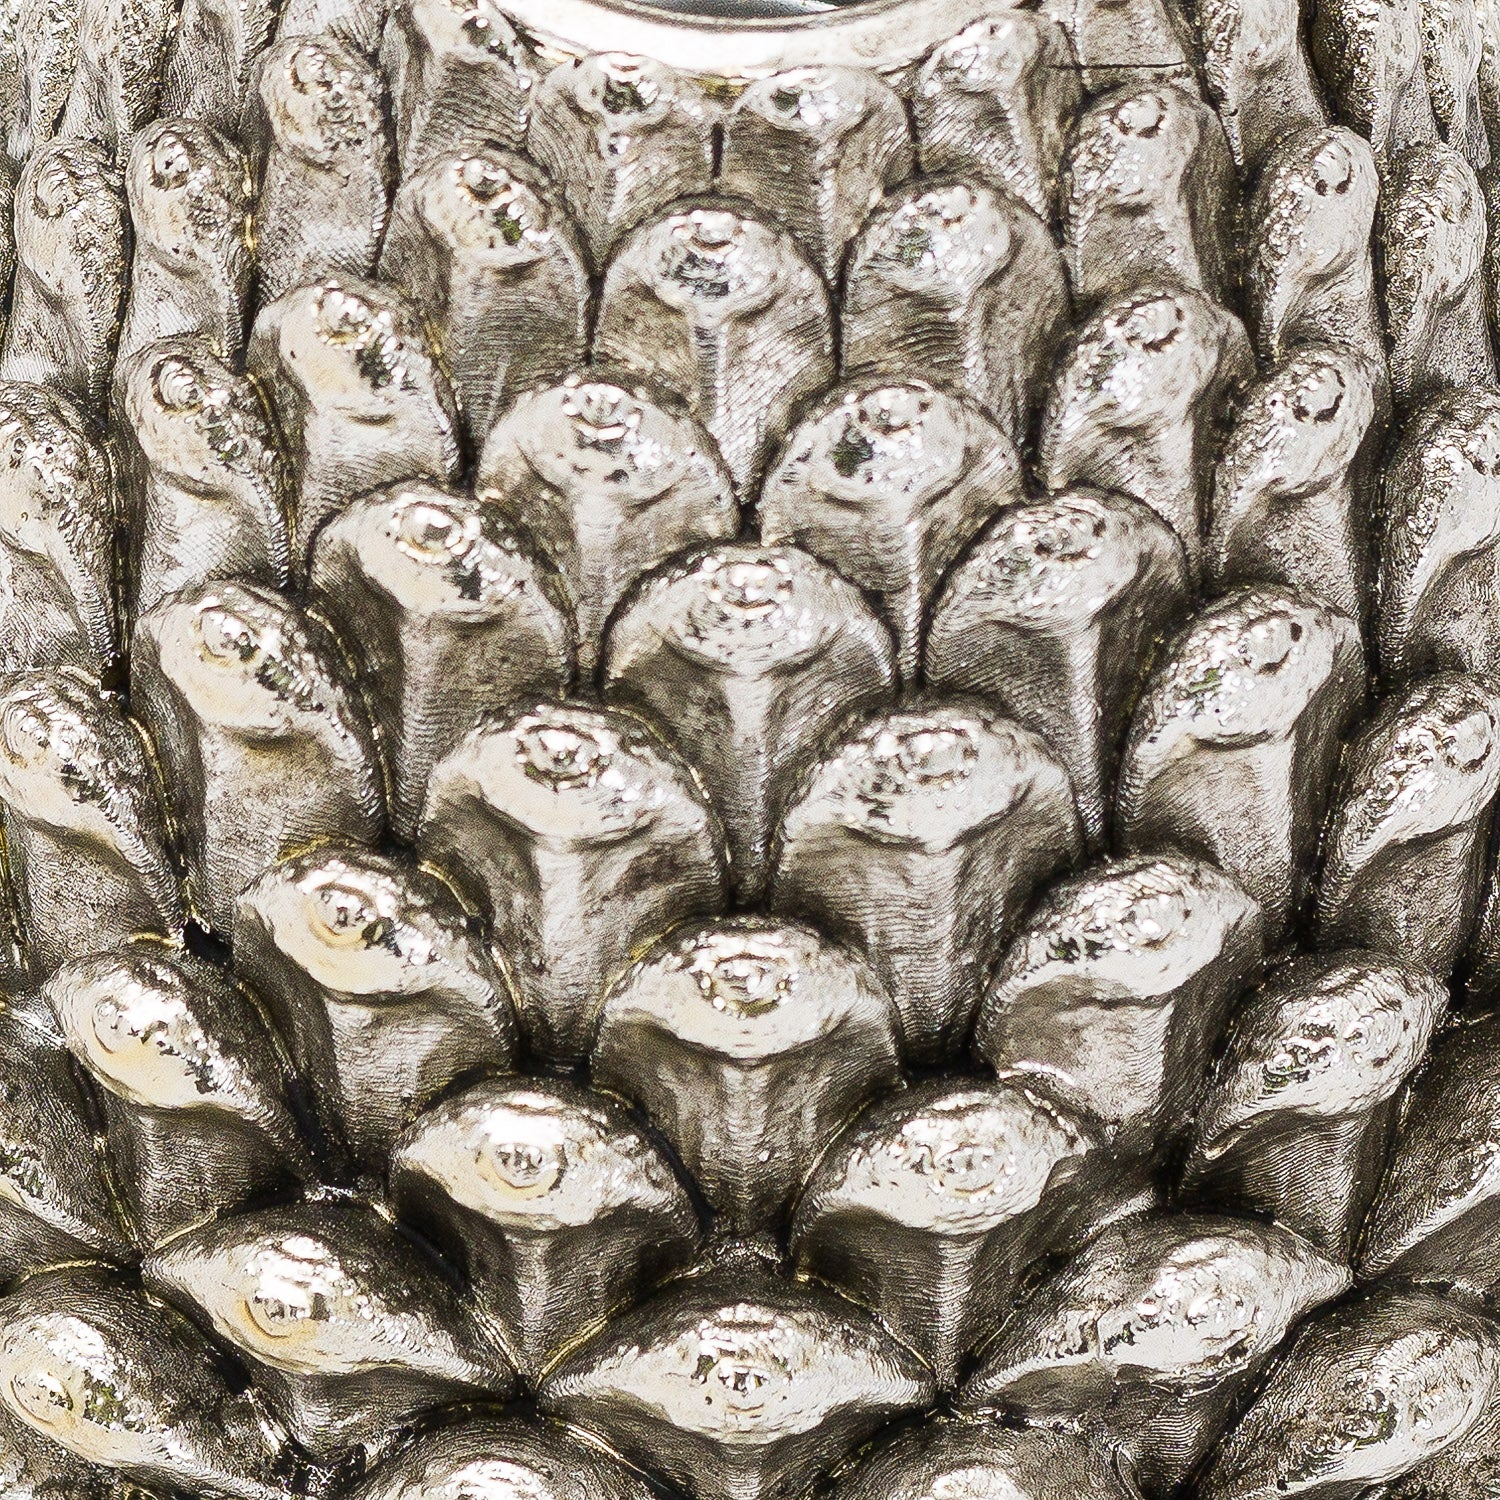 Medium Silver Pinecone Candle Holder - The Tulip Tree Chiddingstone